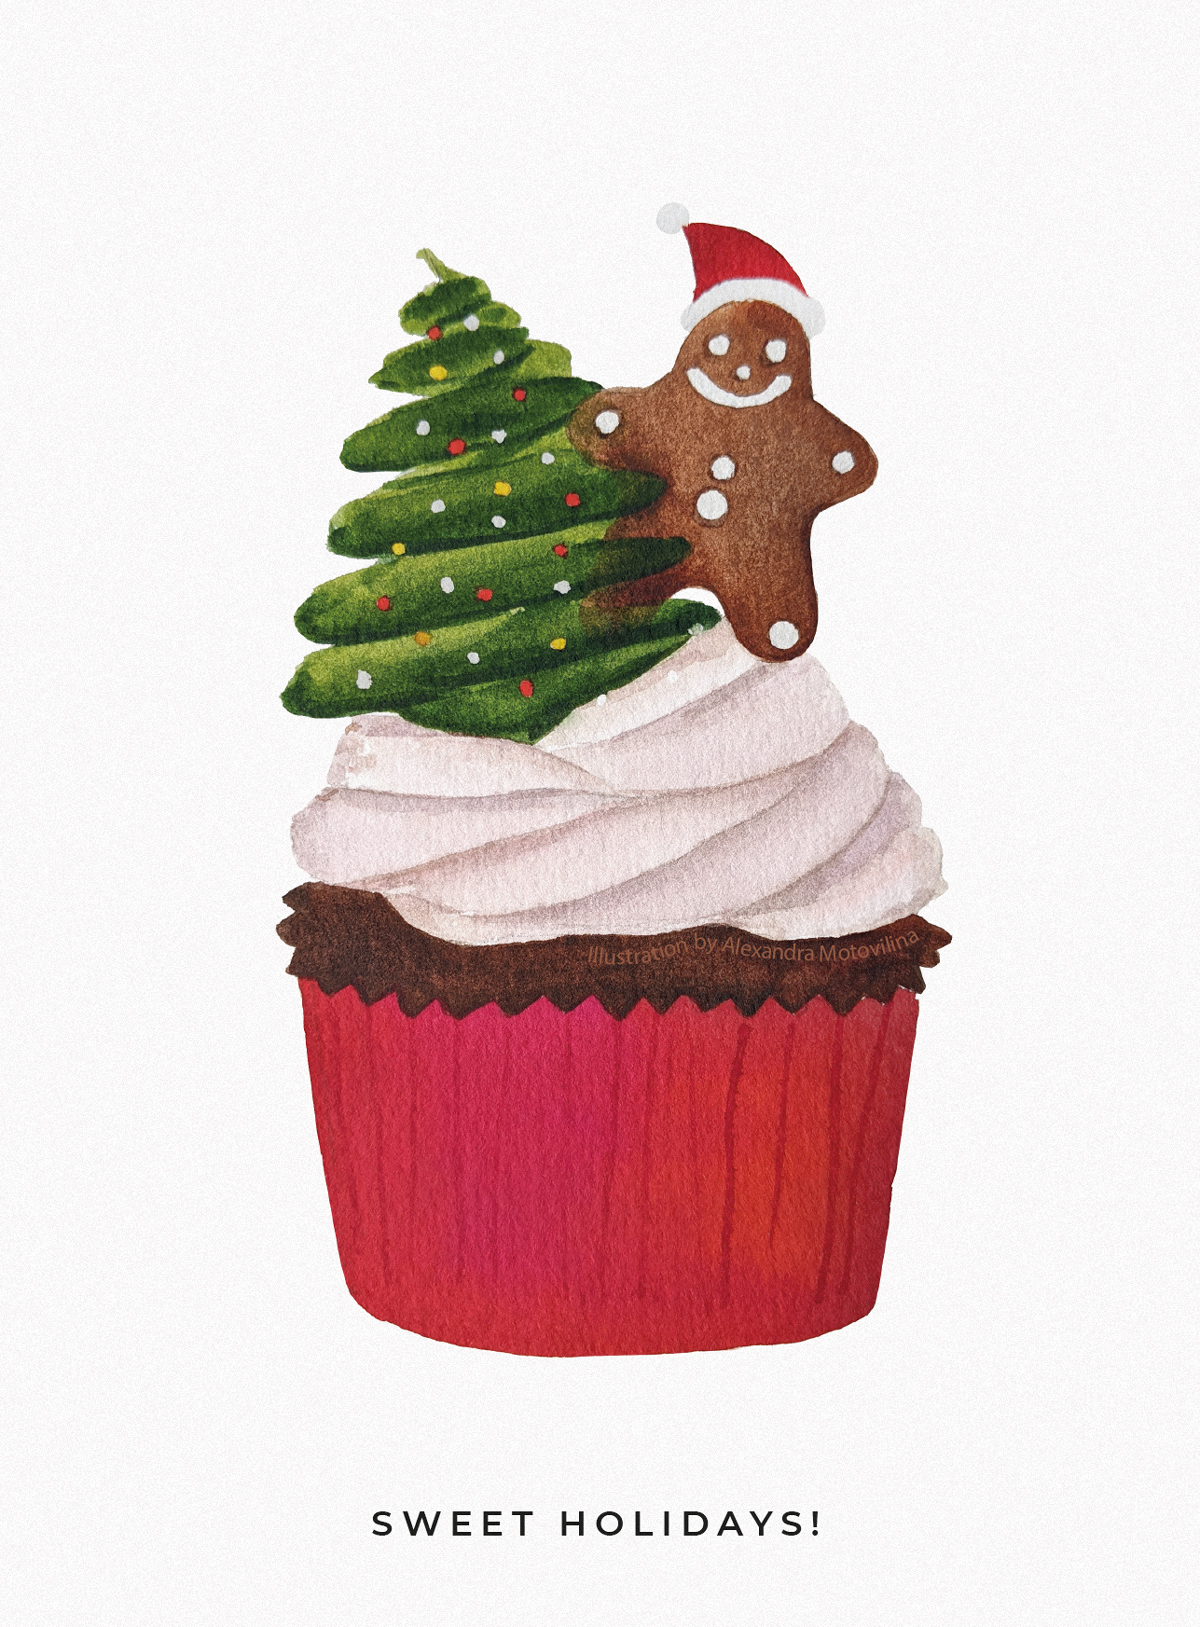 Alexandra-Motovilina_Christmas-Illustration_Gingerbread-Men